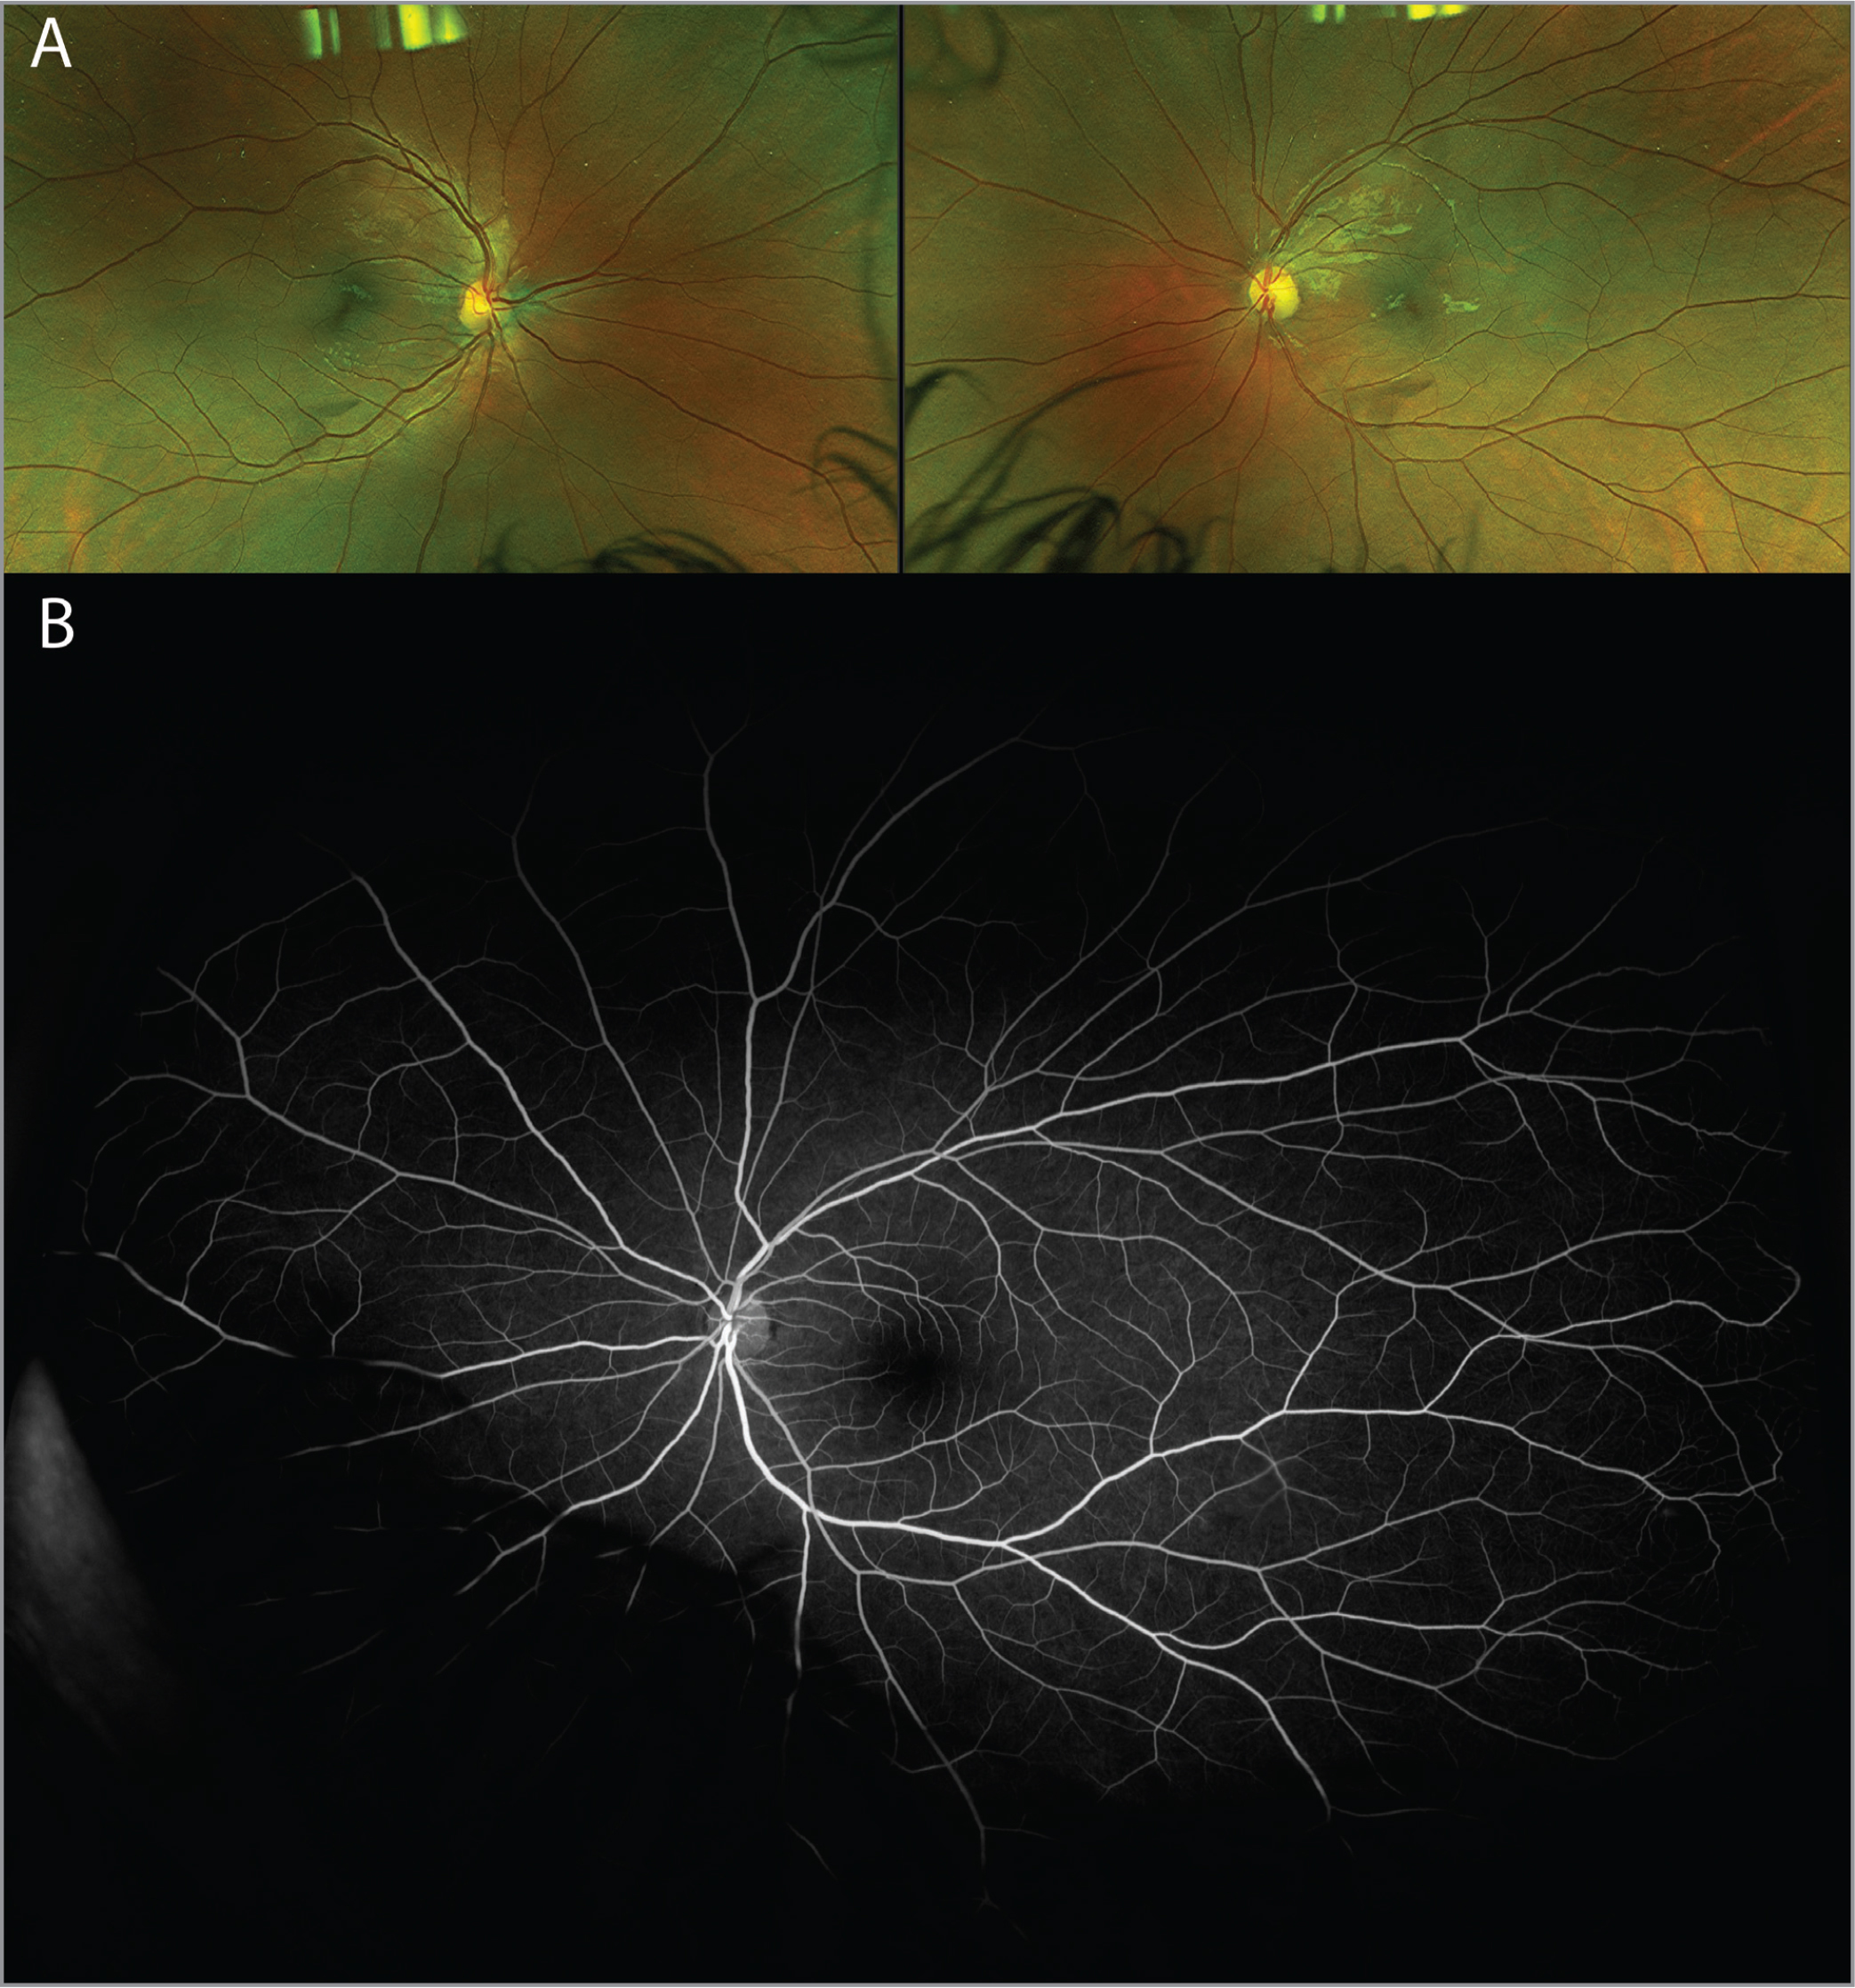 (A) Color fundus photography at 7 months after central retinal artery occlusion demonstrating no residual retinal whitening, hemorrhages, emboli, collaterals, or retinal neovascularization present in both eyes. Narrowing of retinal vessels in the left eye (OS). (B) Ultra-widefield fluorescein angiography at 7-months follow-up demonstrating normal filling times and complete retinal vascular filling without collateralization OS.